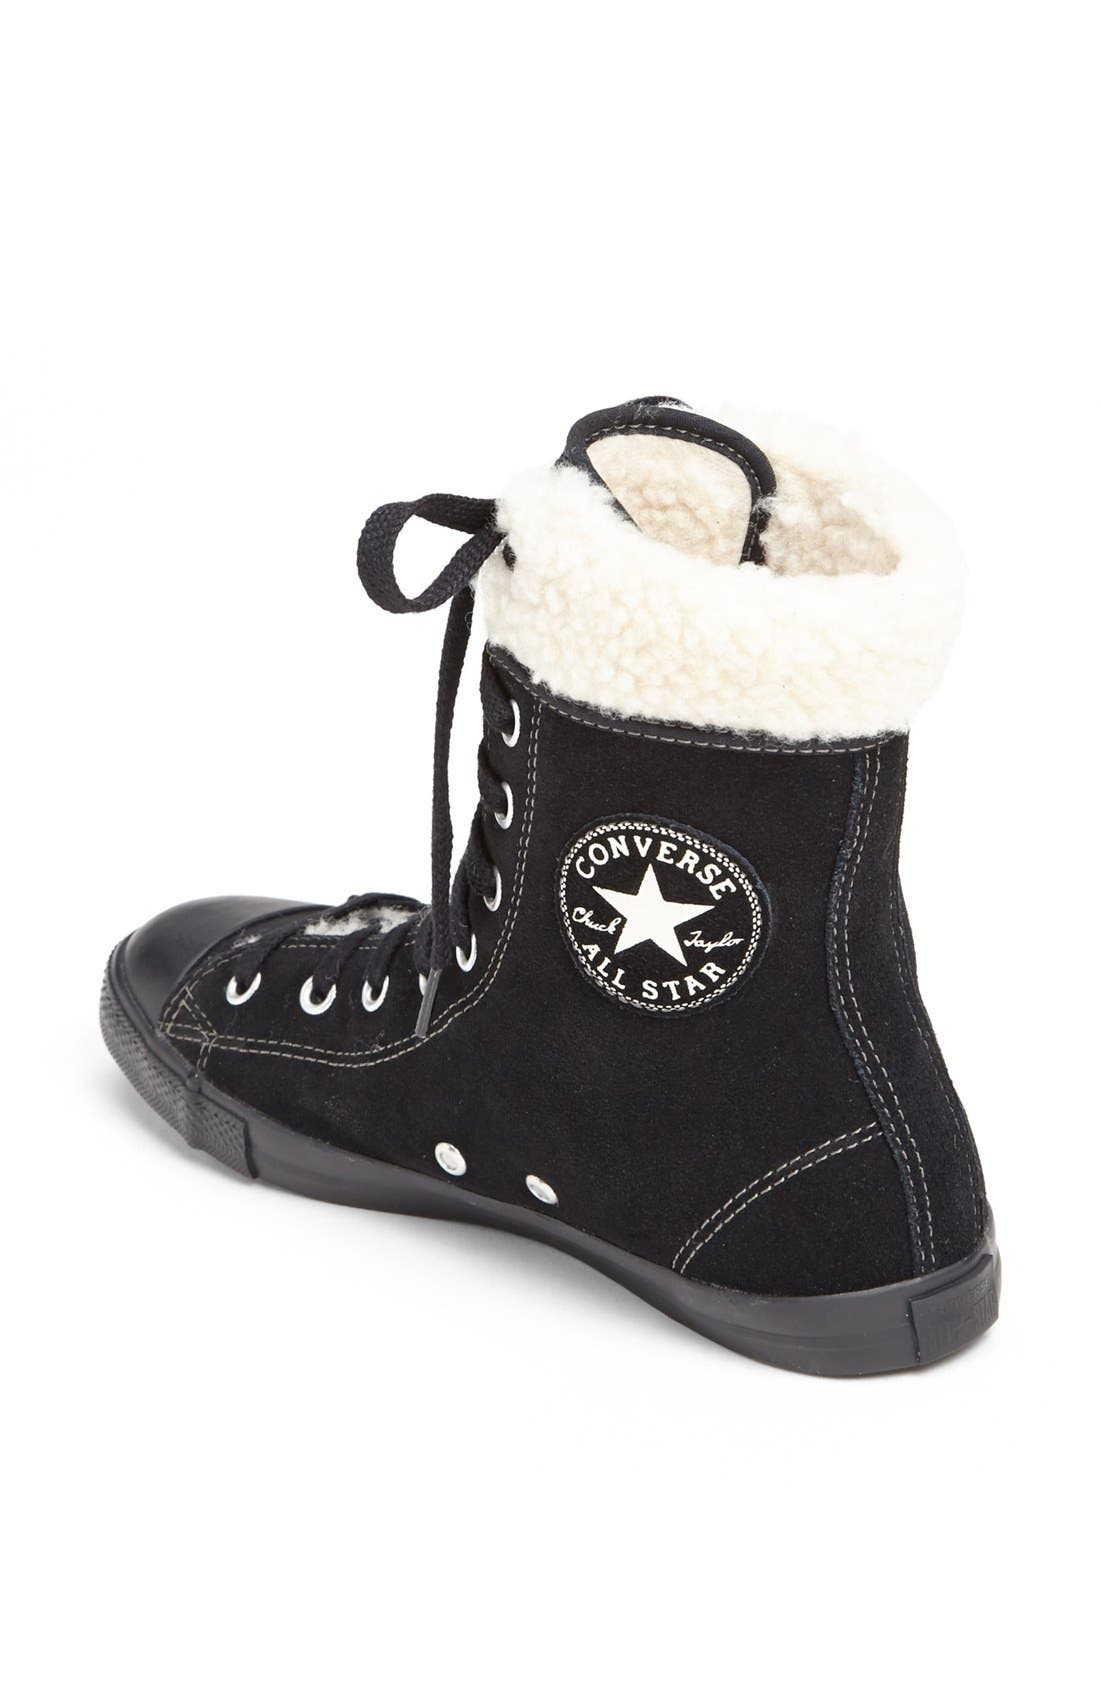 Alternate Image 2  - Converse Chuck Taylor® All Star®' Dainty' Suede High Top Sneaker (Women)